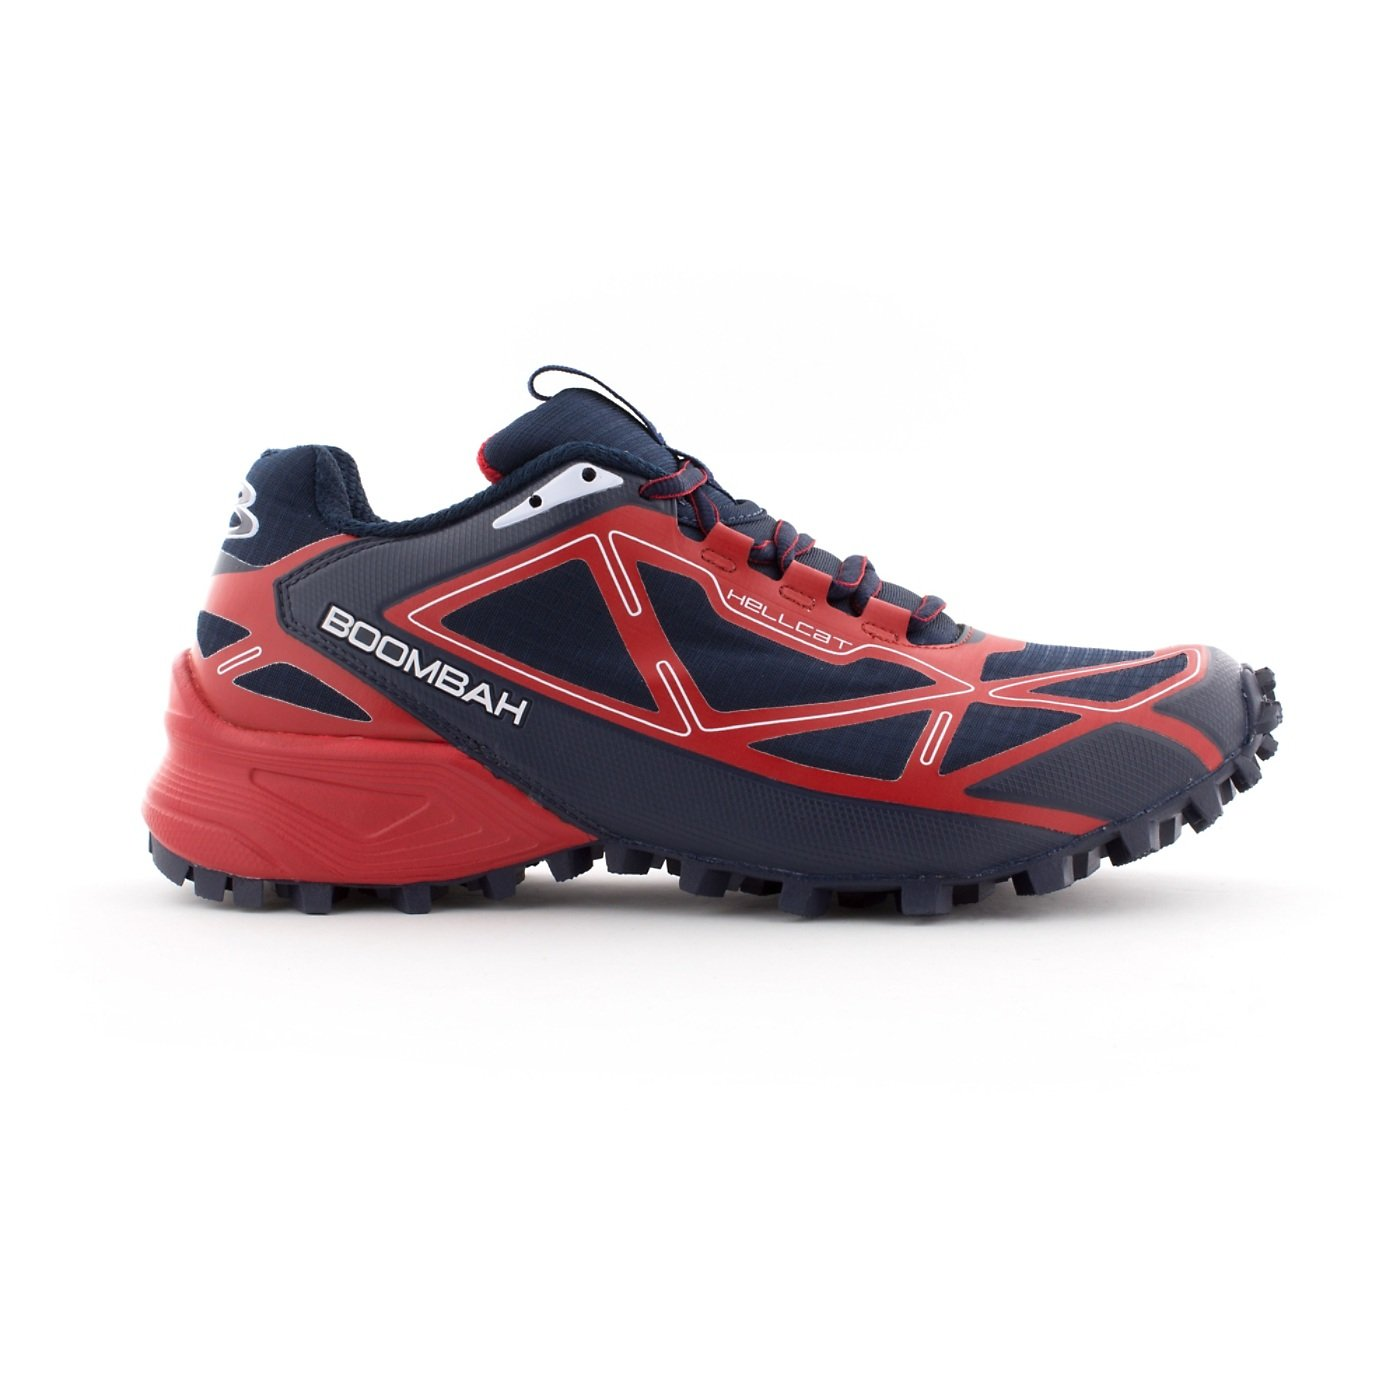 Boombah Men's Hellcat Trail Shoe - 14 Color Options - Multiple Sizes B073X6FH3R 9.5|Navy/Red